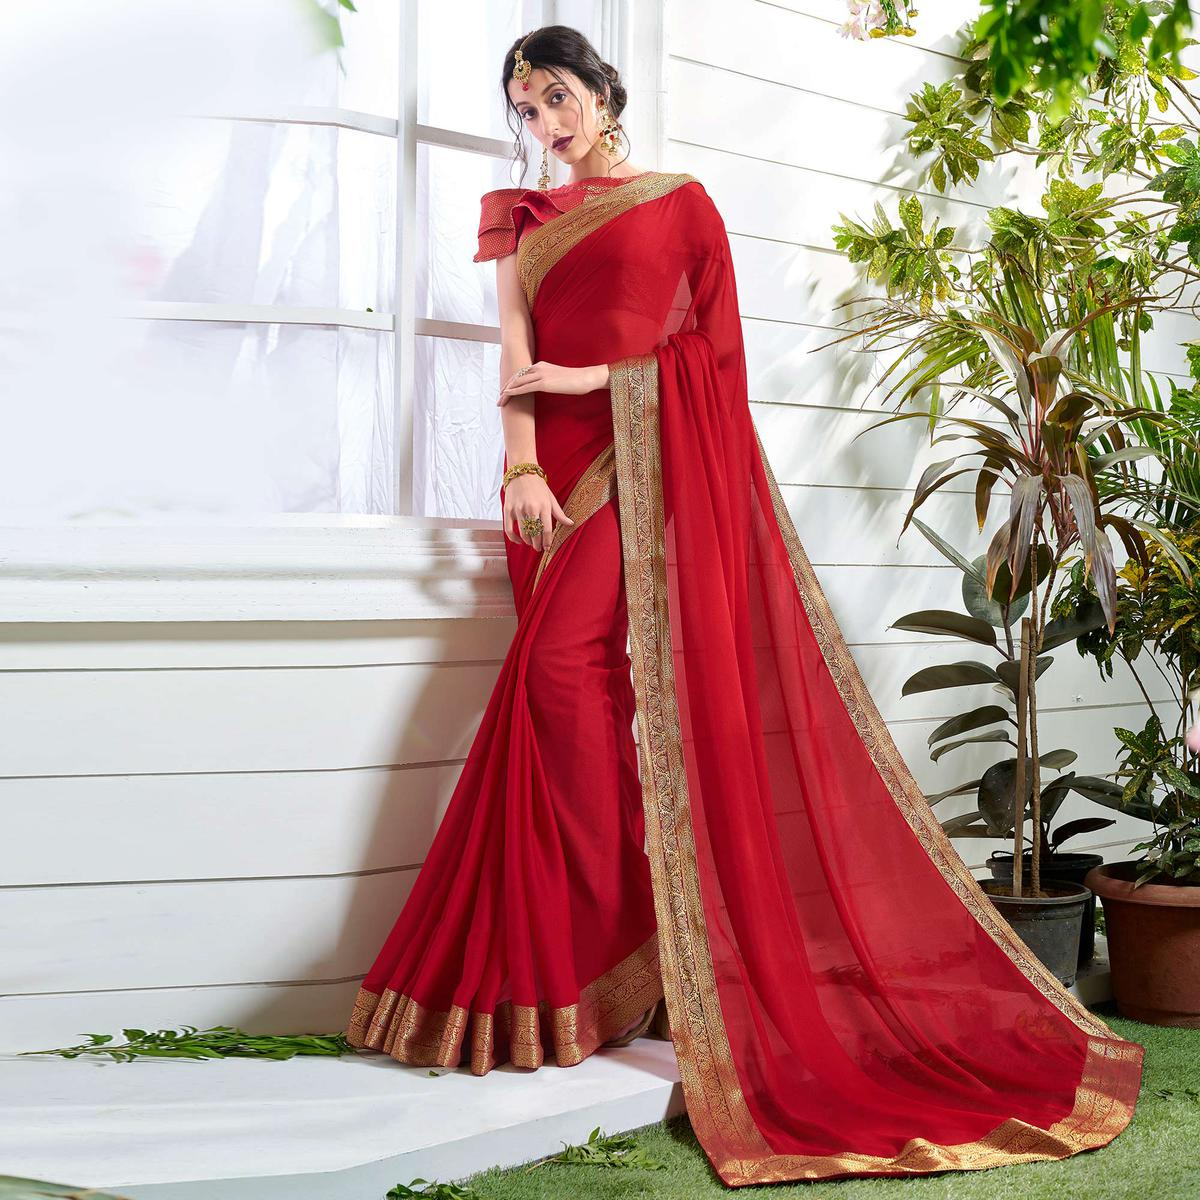 Pleasurable Red Colored Designer Party Wear Chiffon Saree.